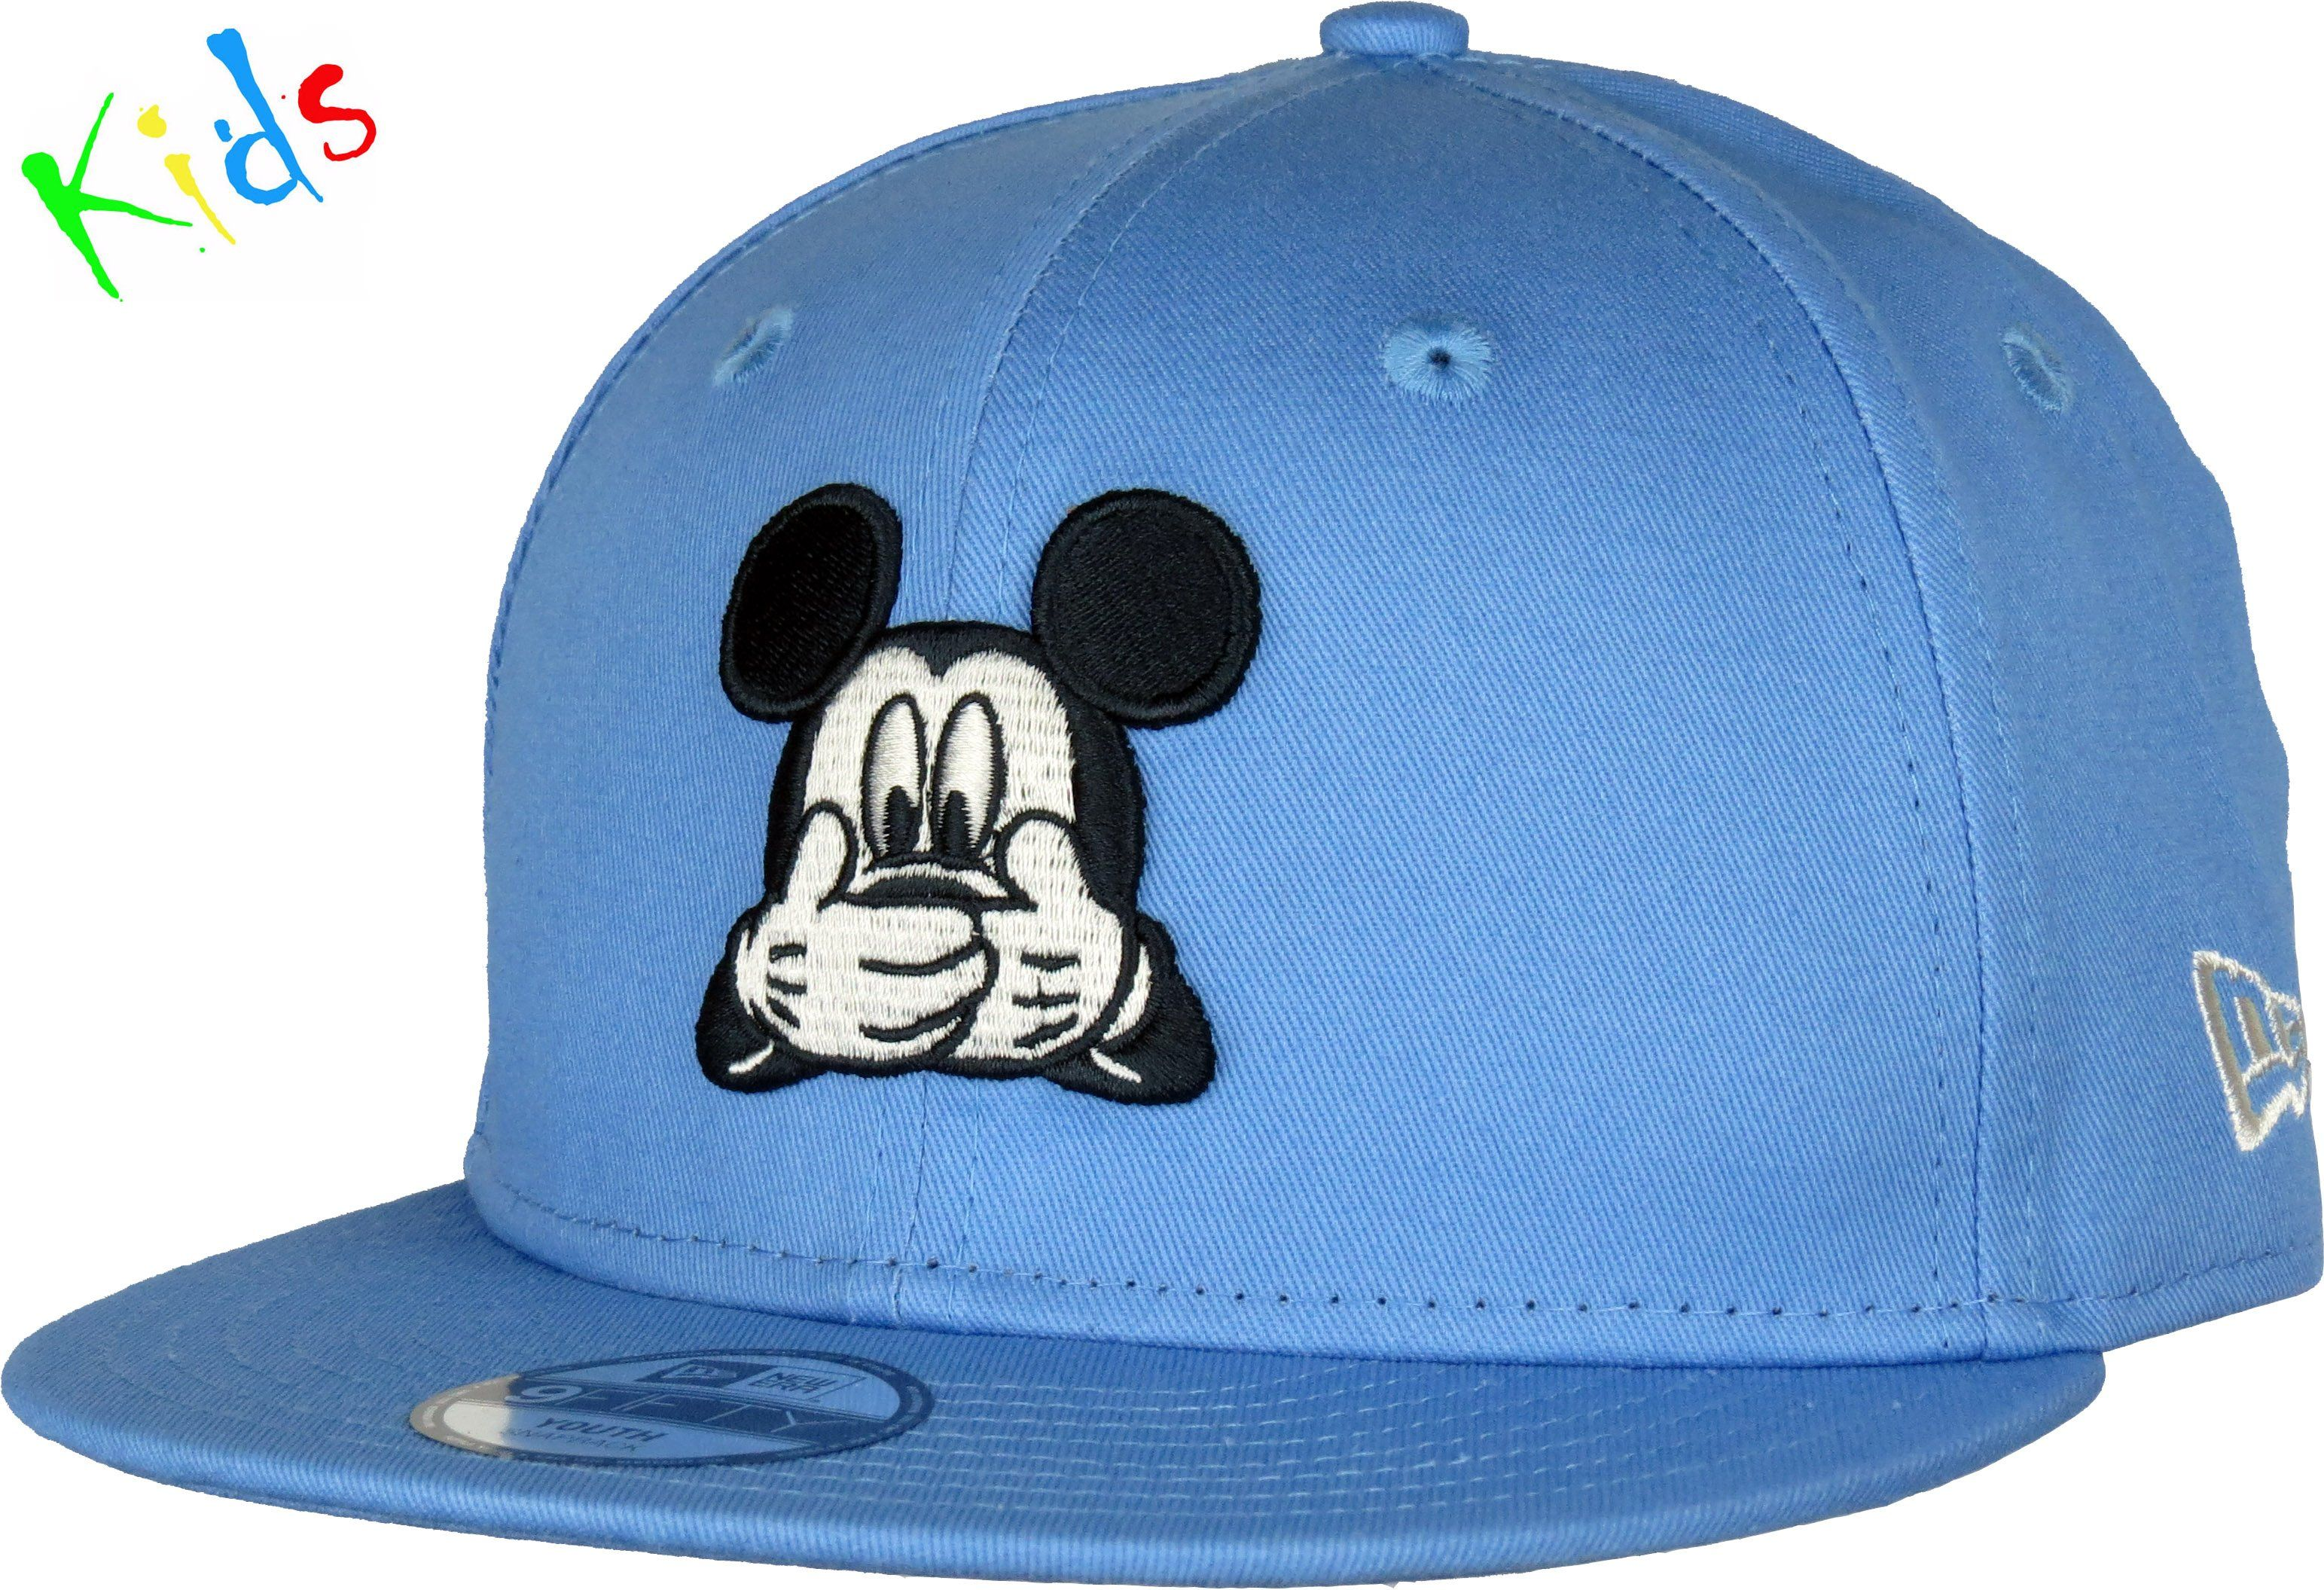 353765d09b0 New Era Kids 950 Disney Express Snapback Cap. Blue with the Mickey Mouse  front logo